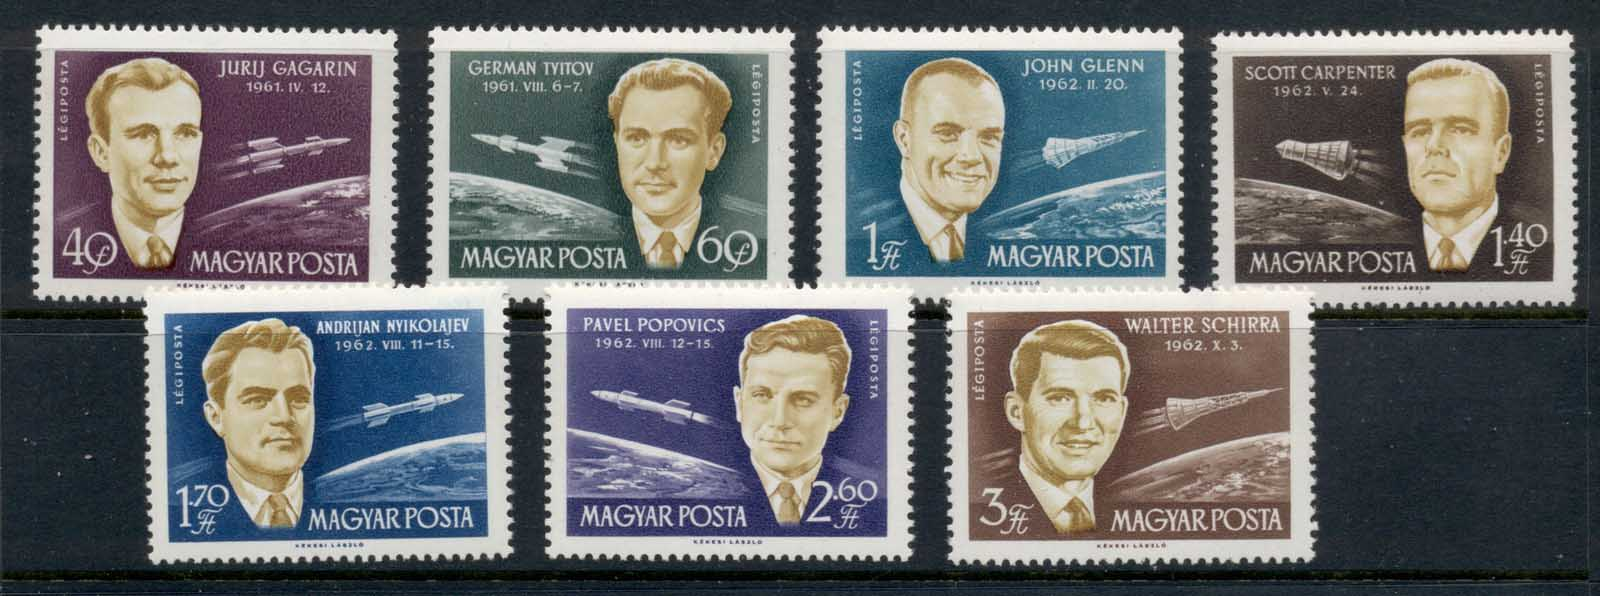 Hungary 1962 First Seven Astronauts MUH